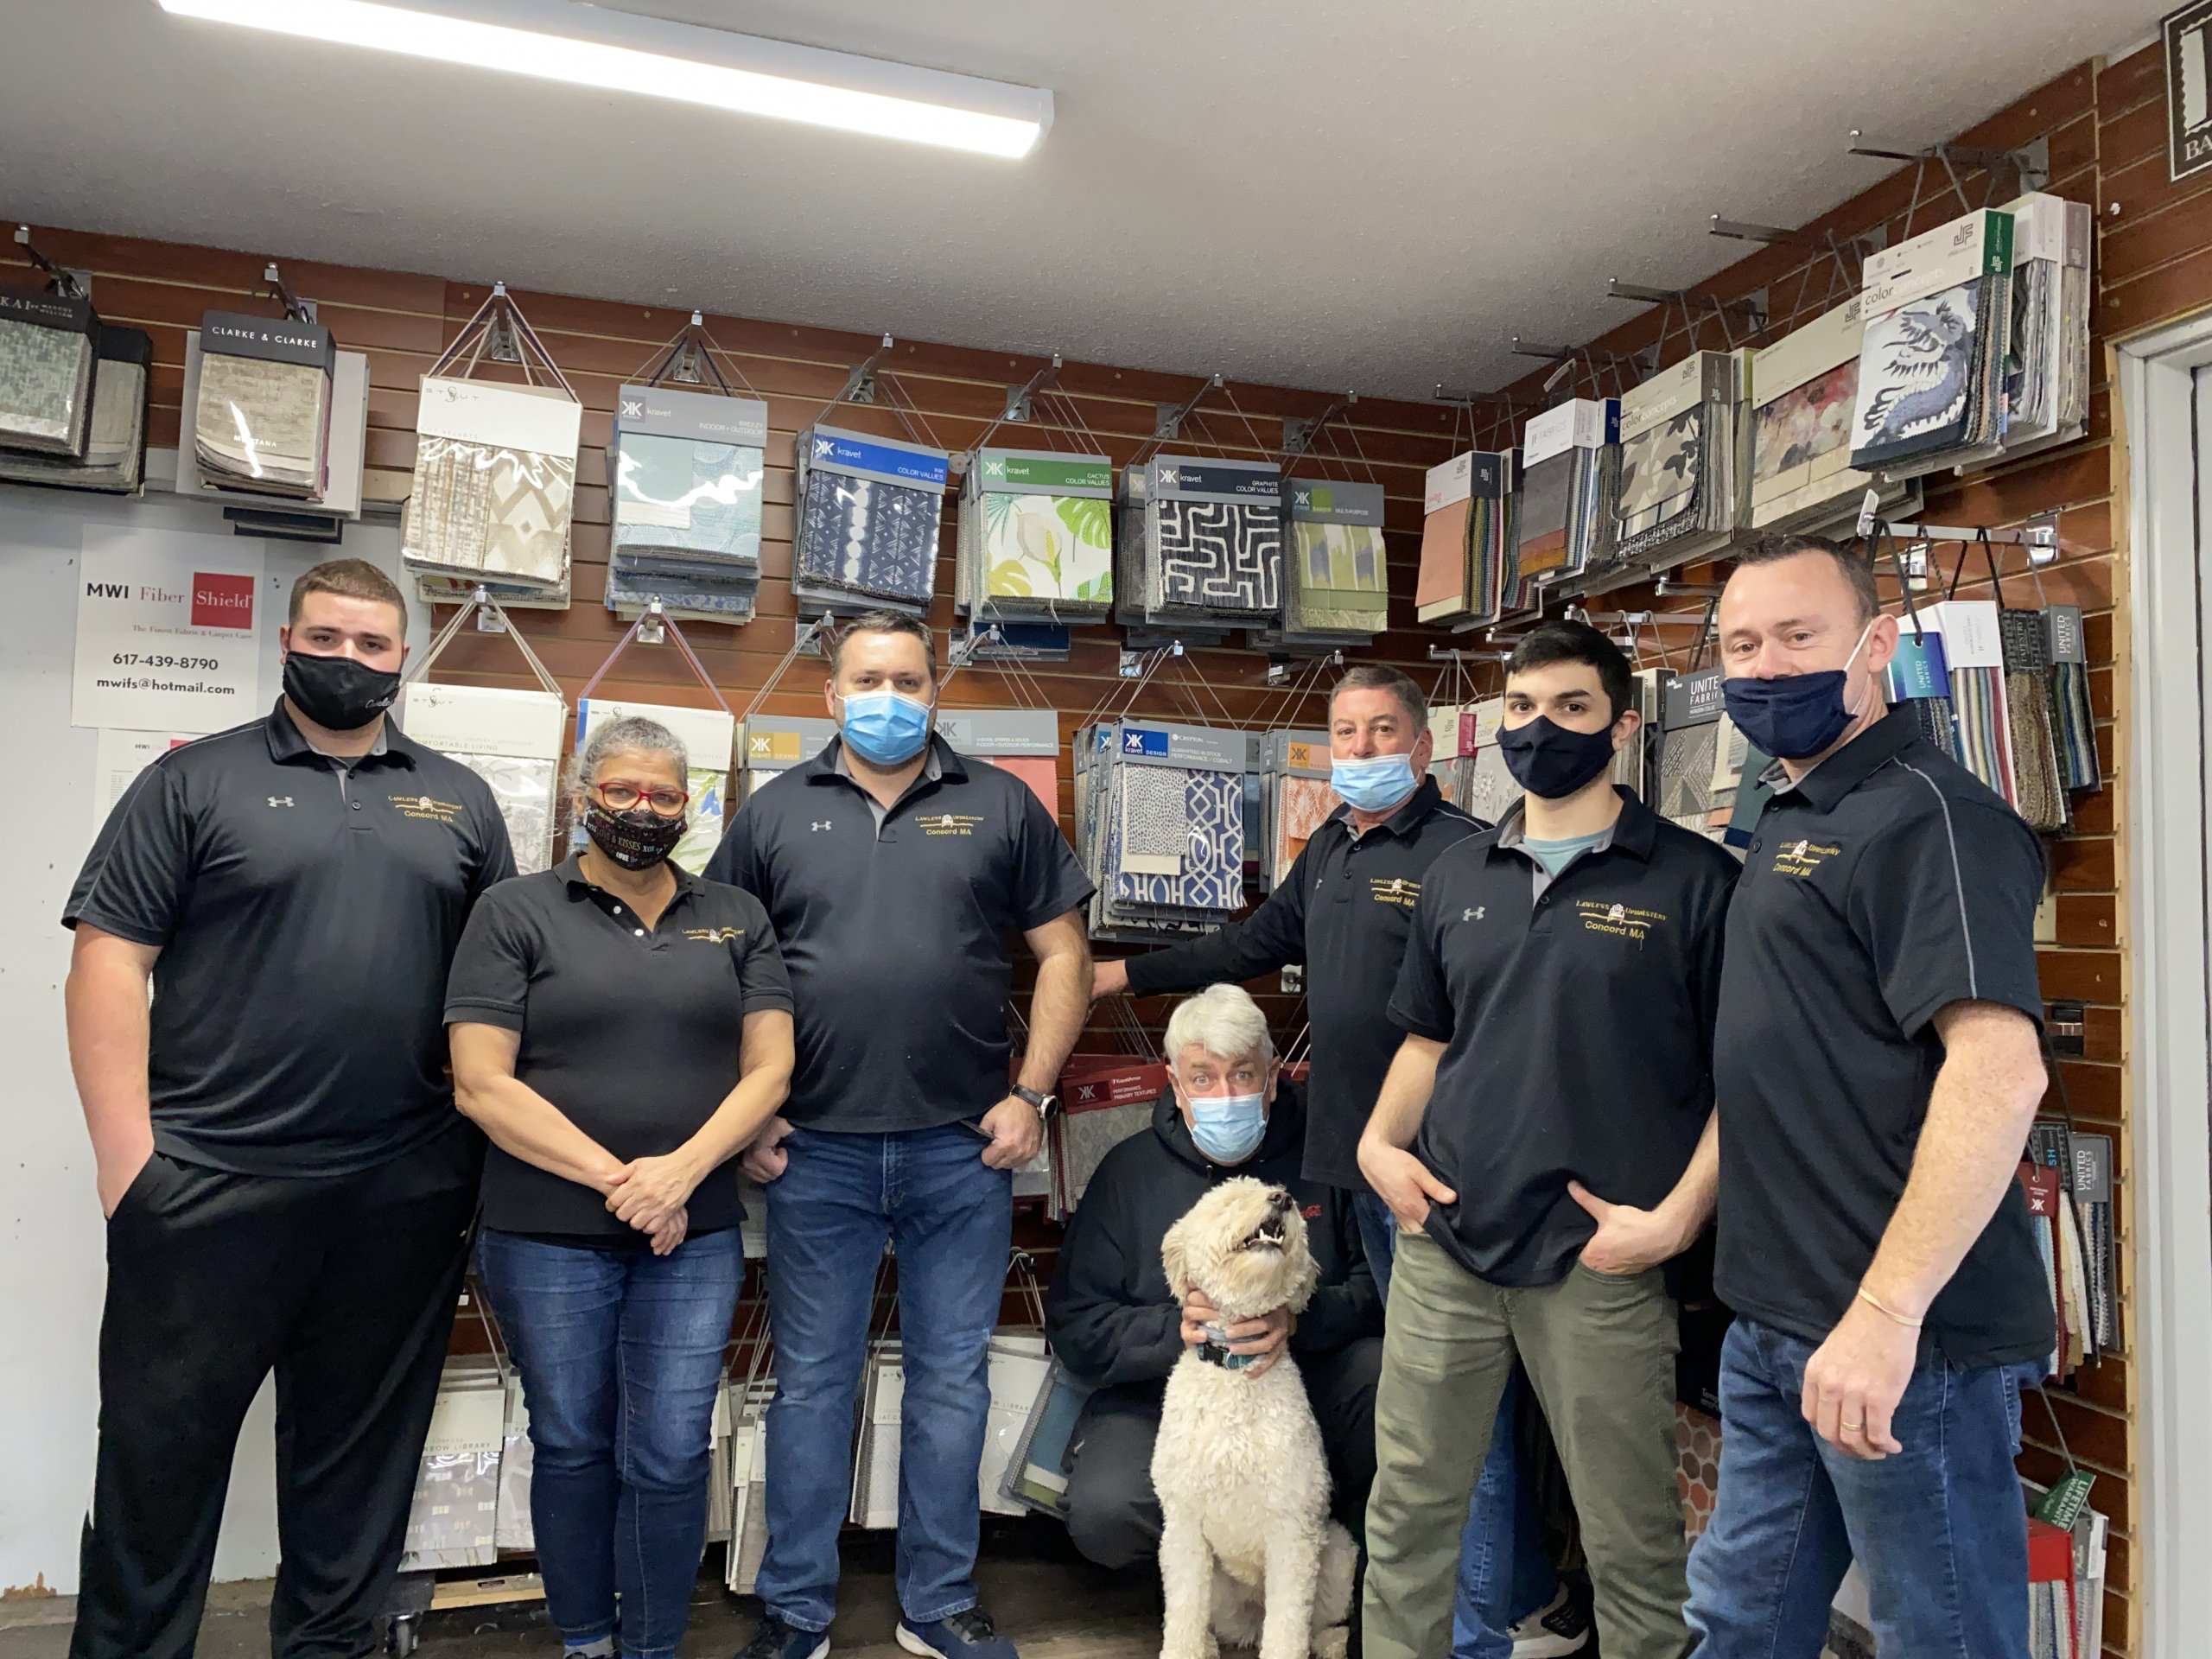 Lawless Upholstery team